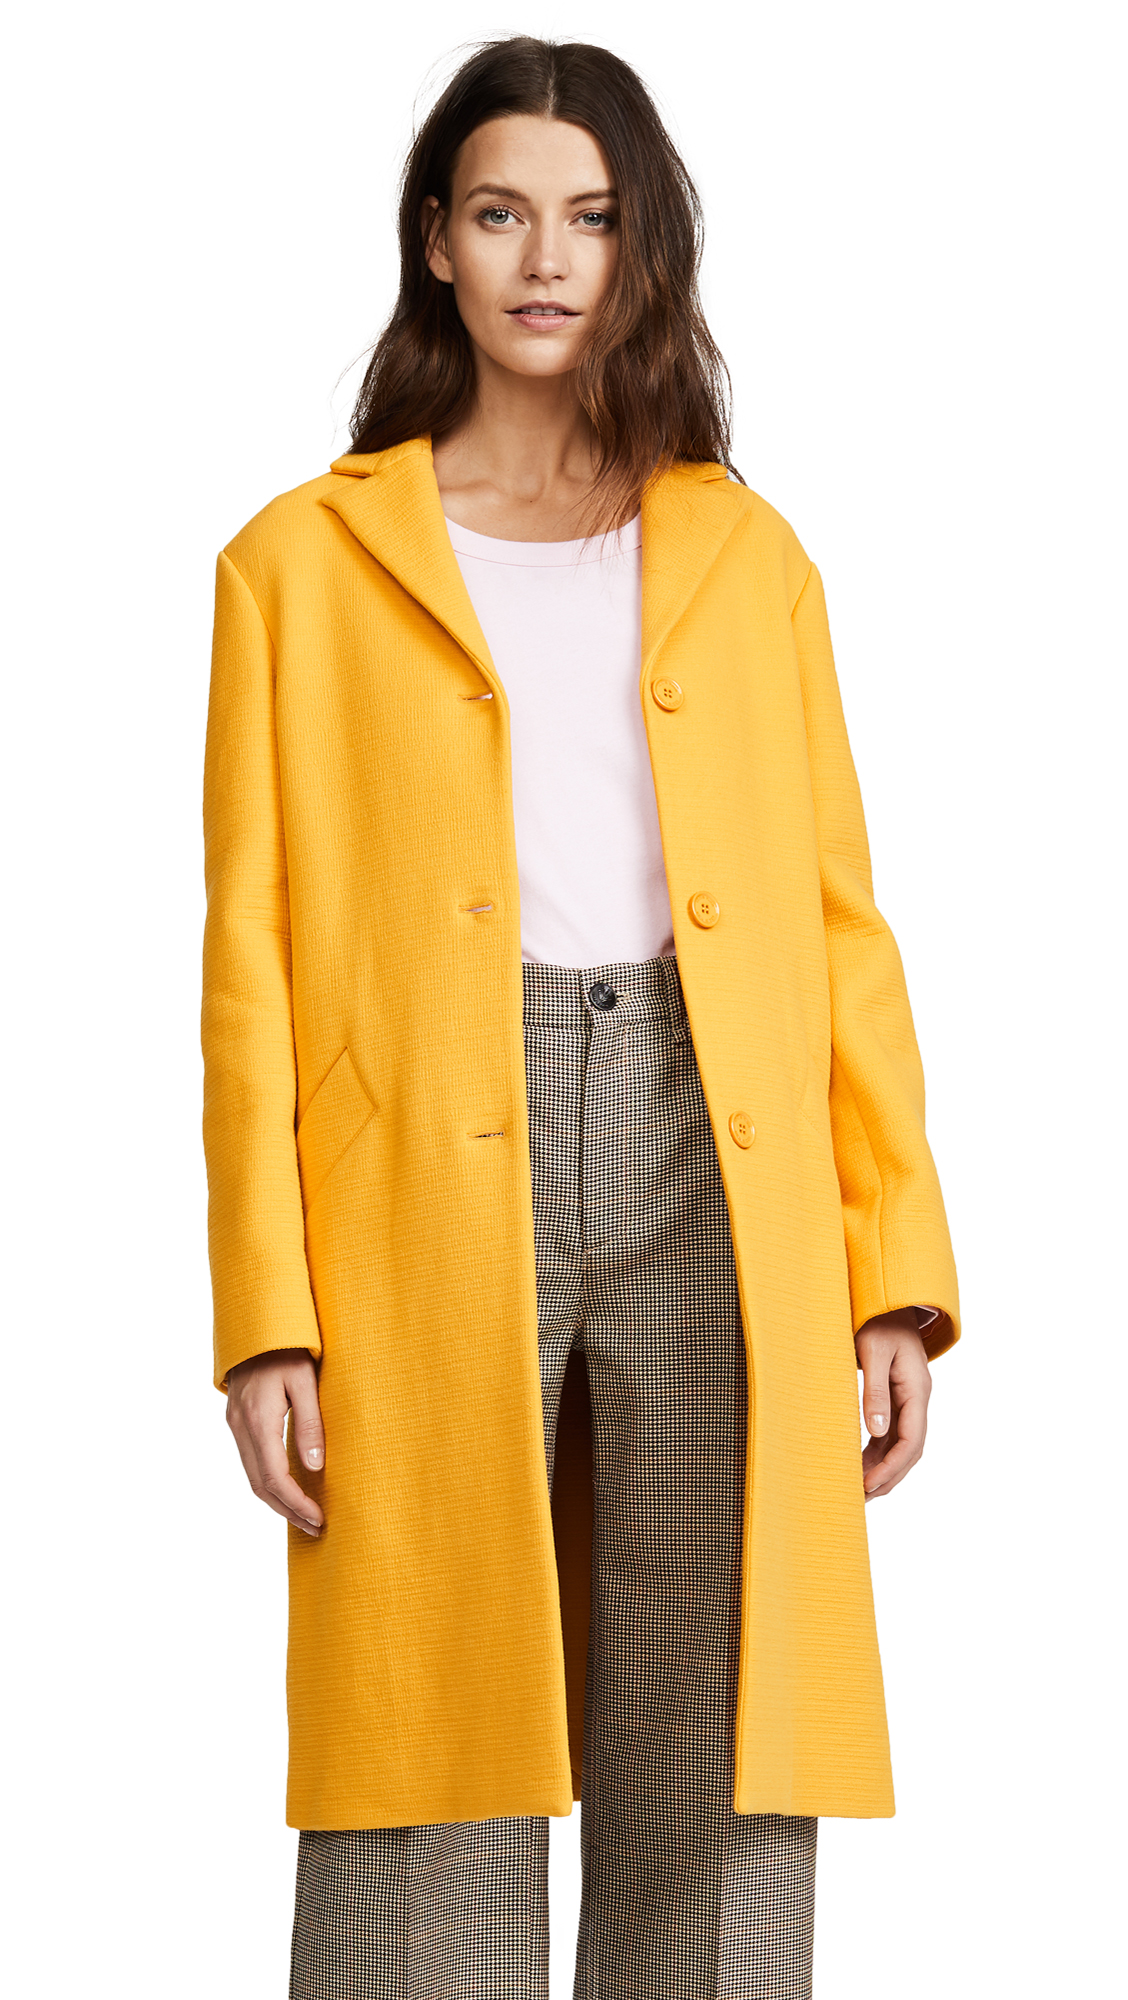 Nina Ricci Sunflower Honeycomb Coat - Sunflower/Honeycomb